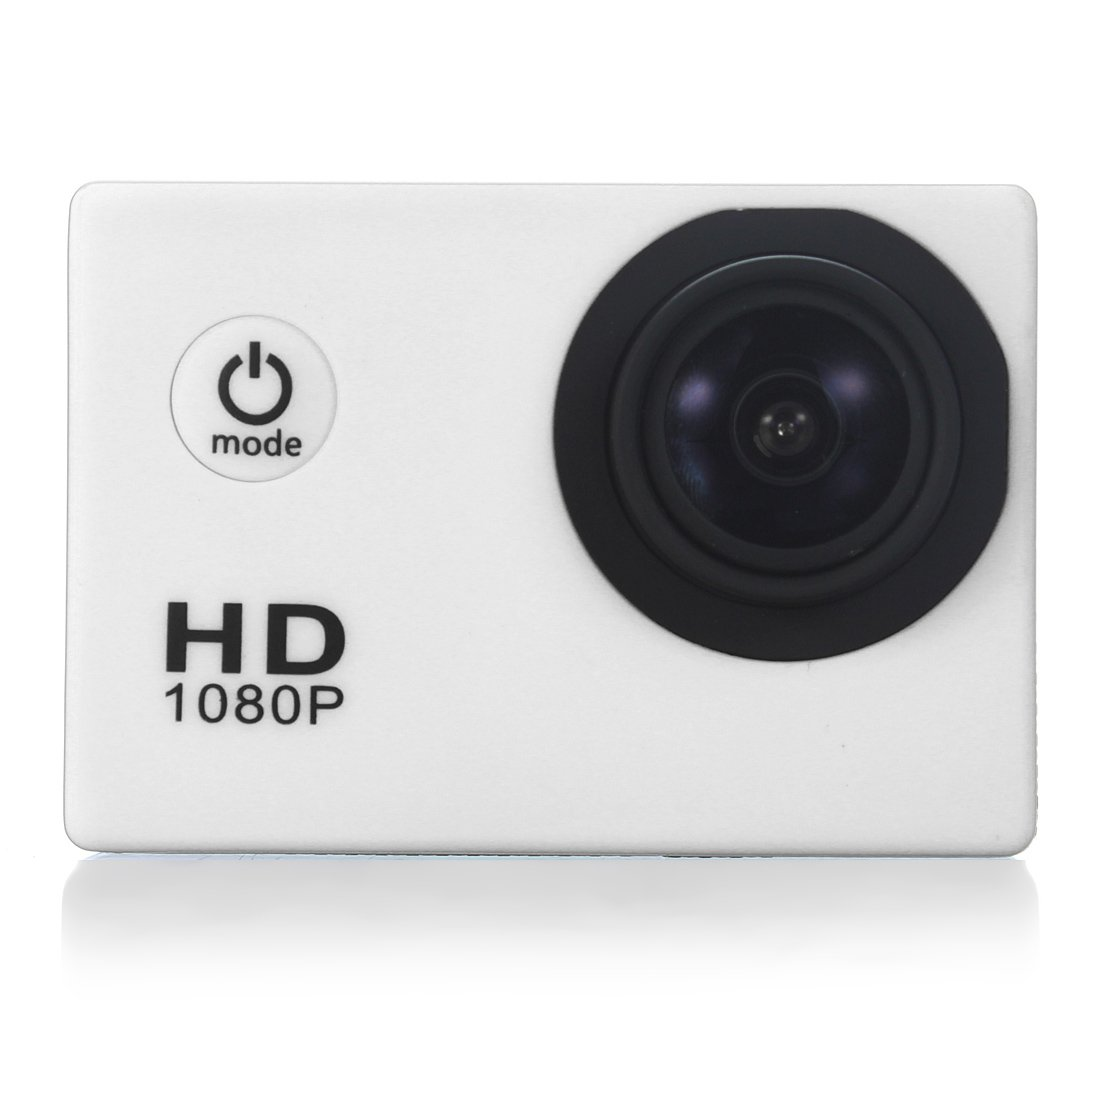 For SJ4000 Full HD 1080P Mini Sport camera action dv with waterproof shell 30M Extreme - white kahane sj4000 full hd 1080p wifi wireless 30m waterproof sport dv video action camera for audi bmw mercedes vw nissan hyundai